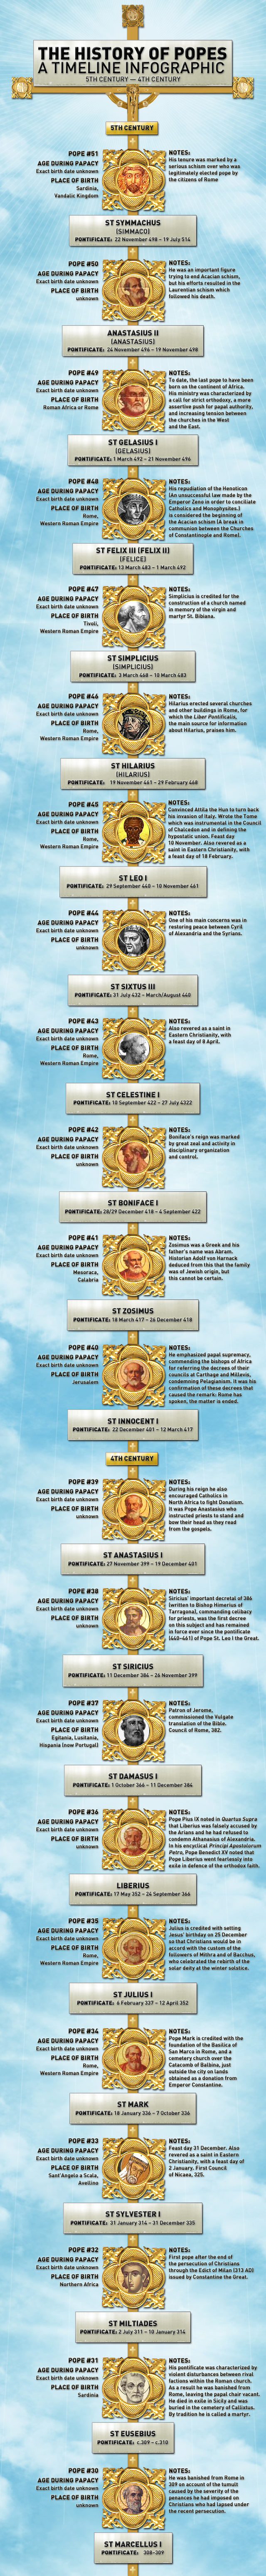 pope timeline list of popes